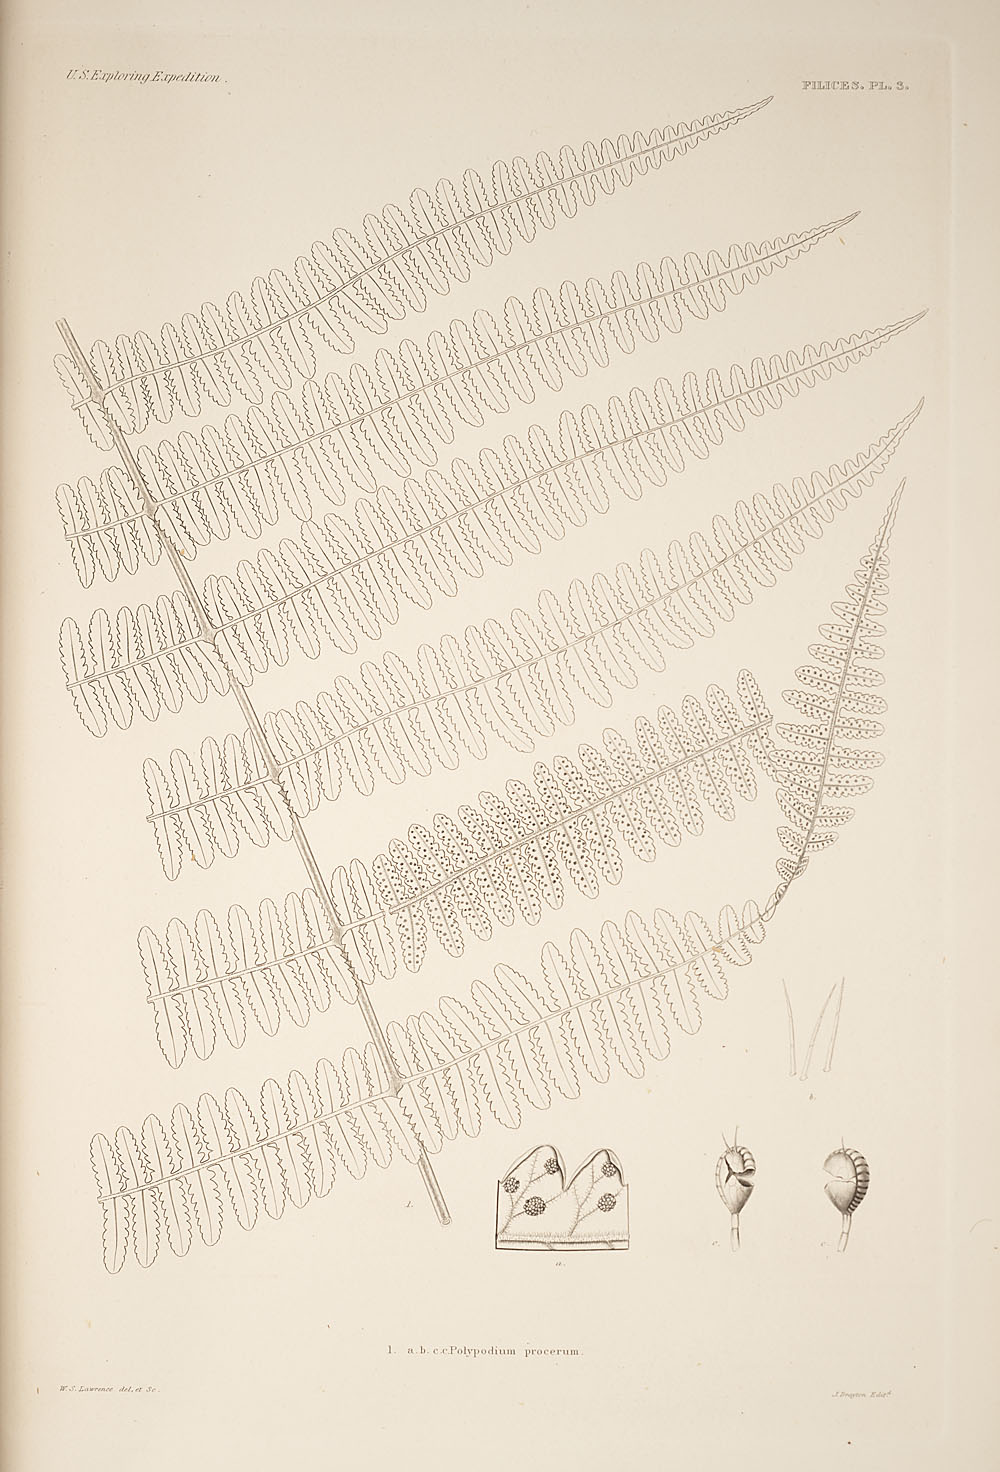 Fig. 1. Polypodium procerum,  Image number:SIL19-24a-015